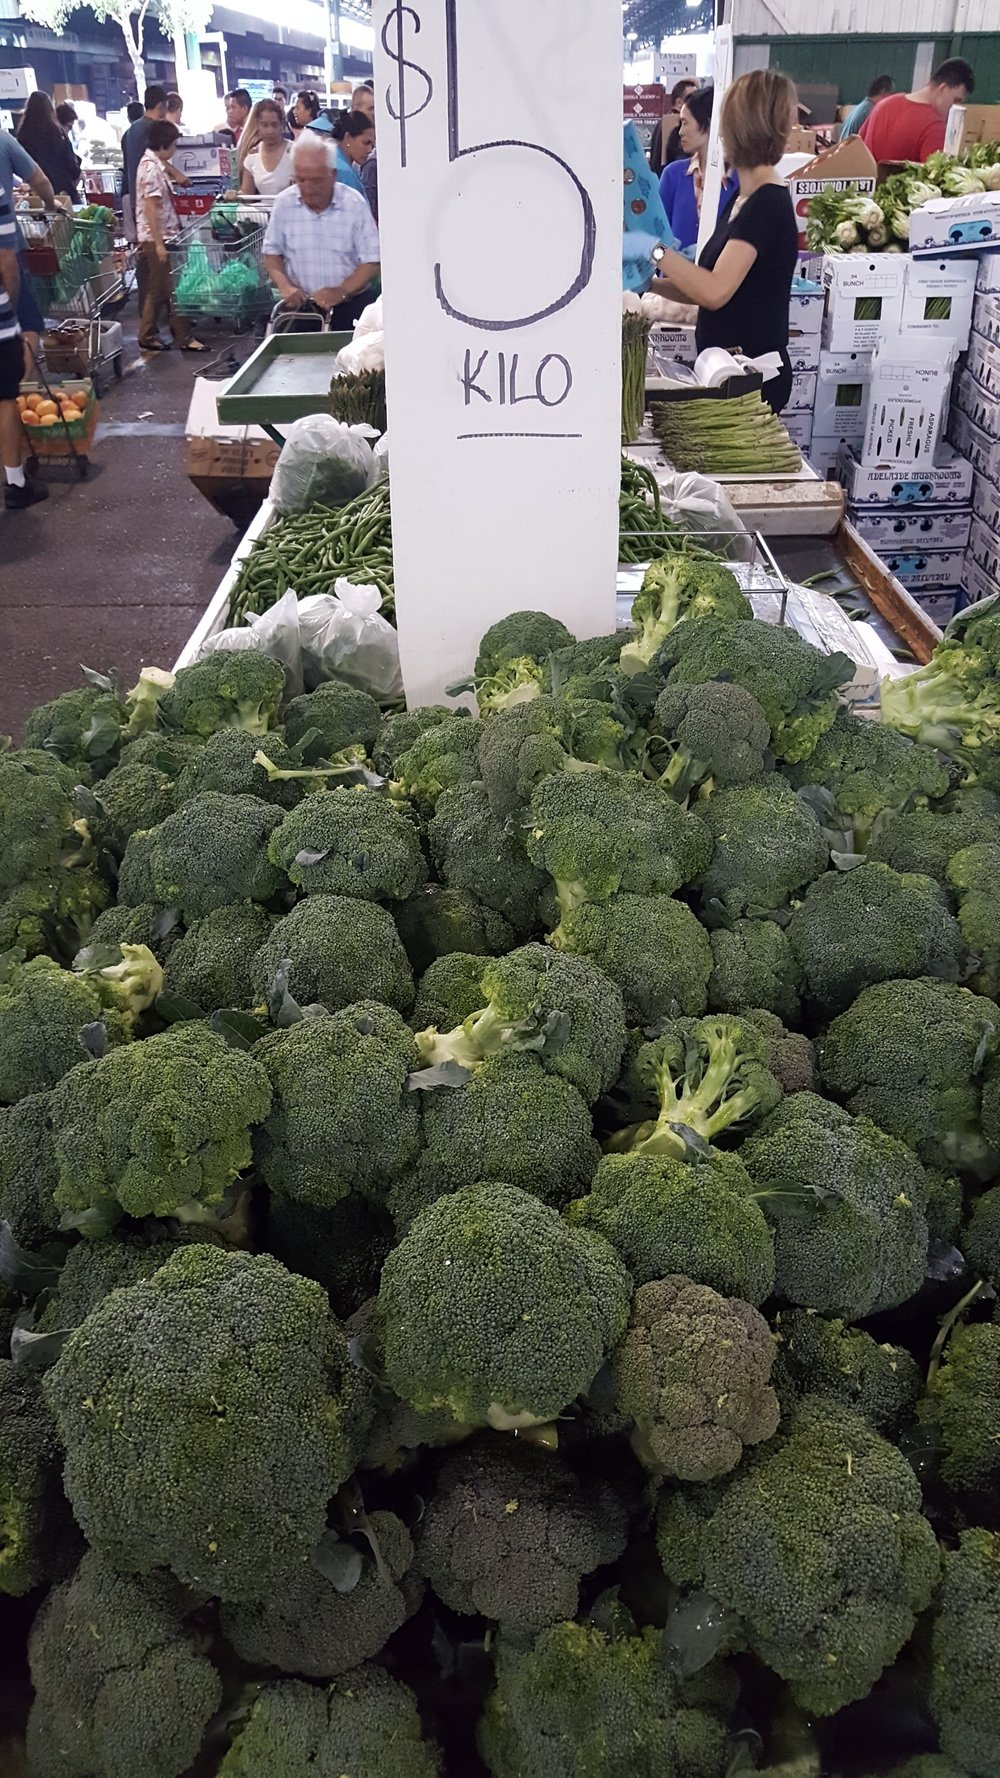 Broccoli for days at Sydney Markets.